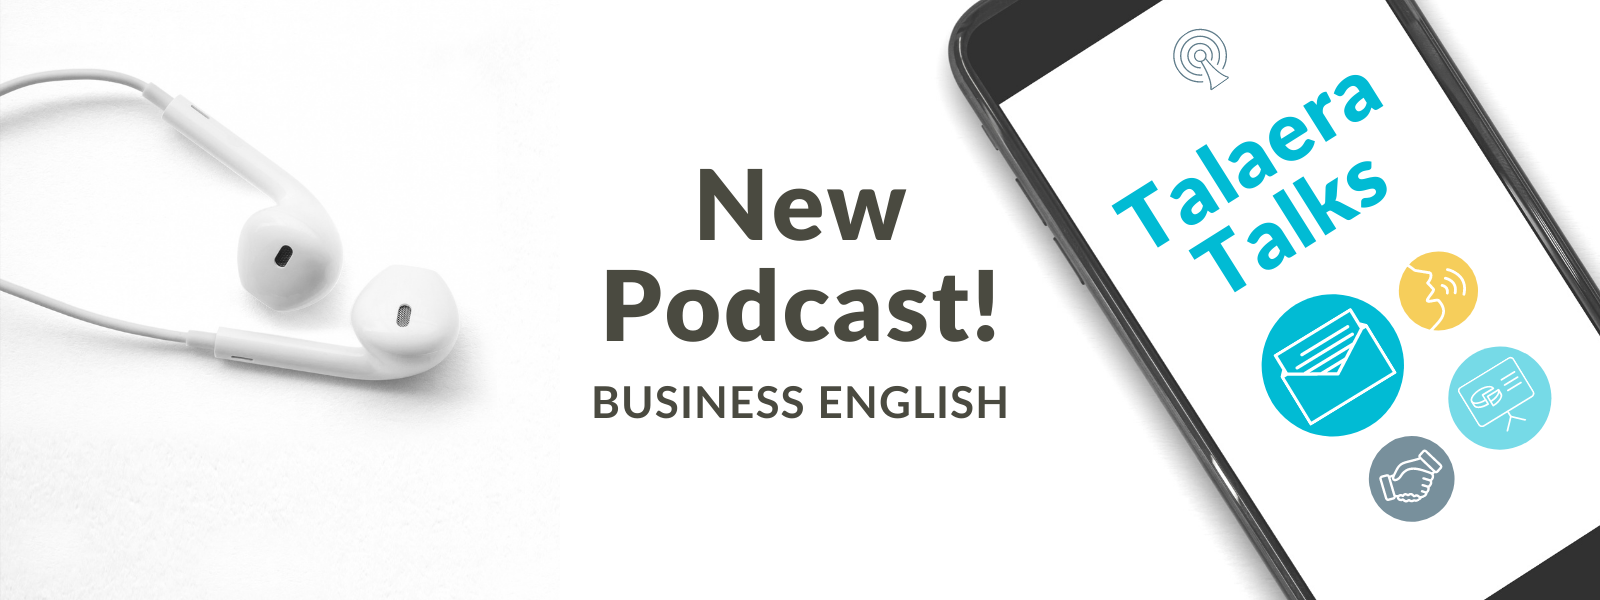 Talaera Talks Business English communication podcast for non-native professionals